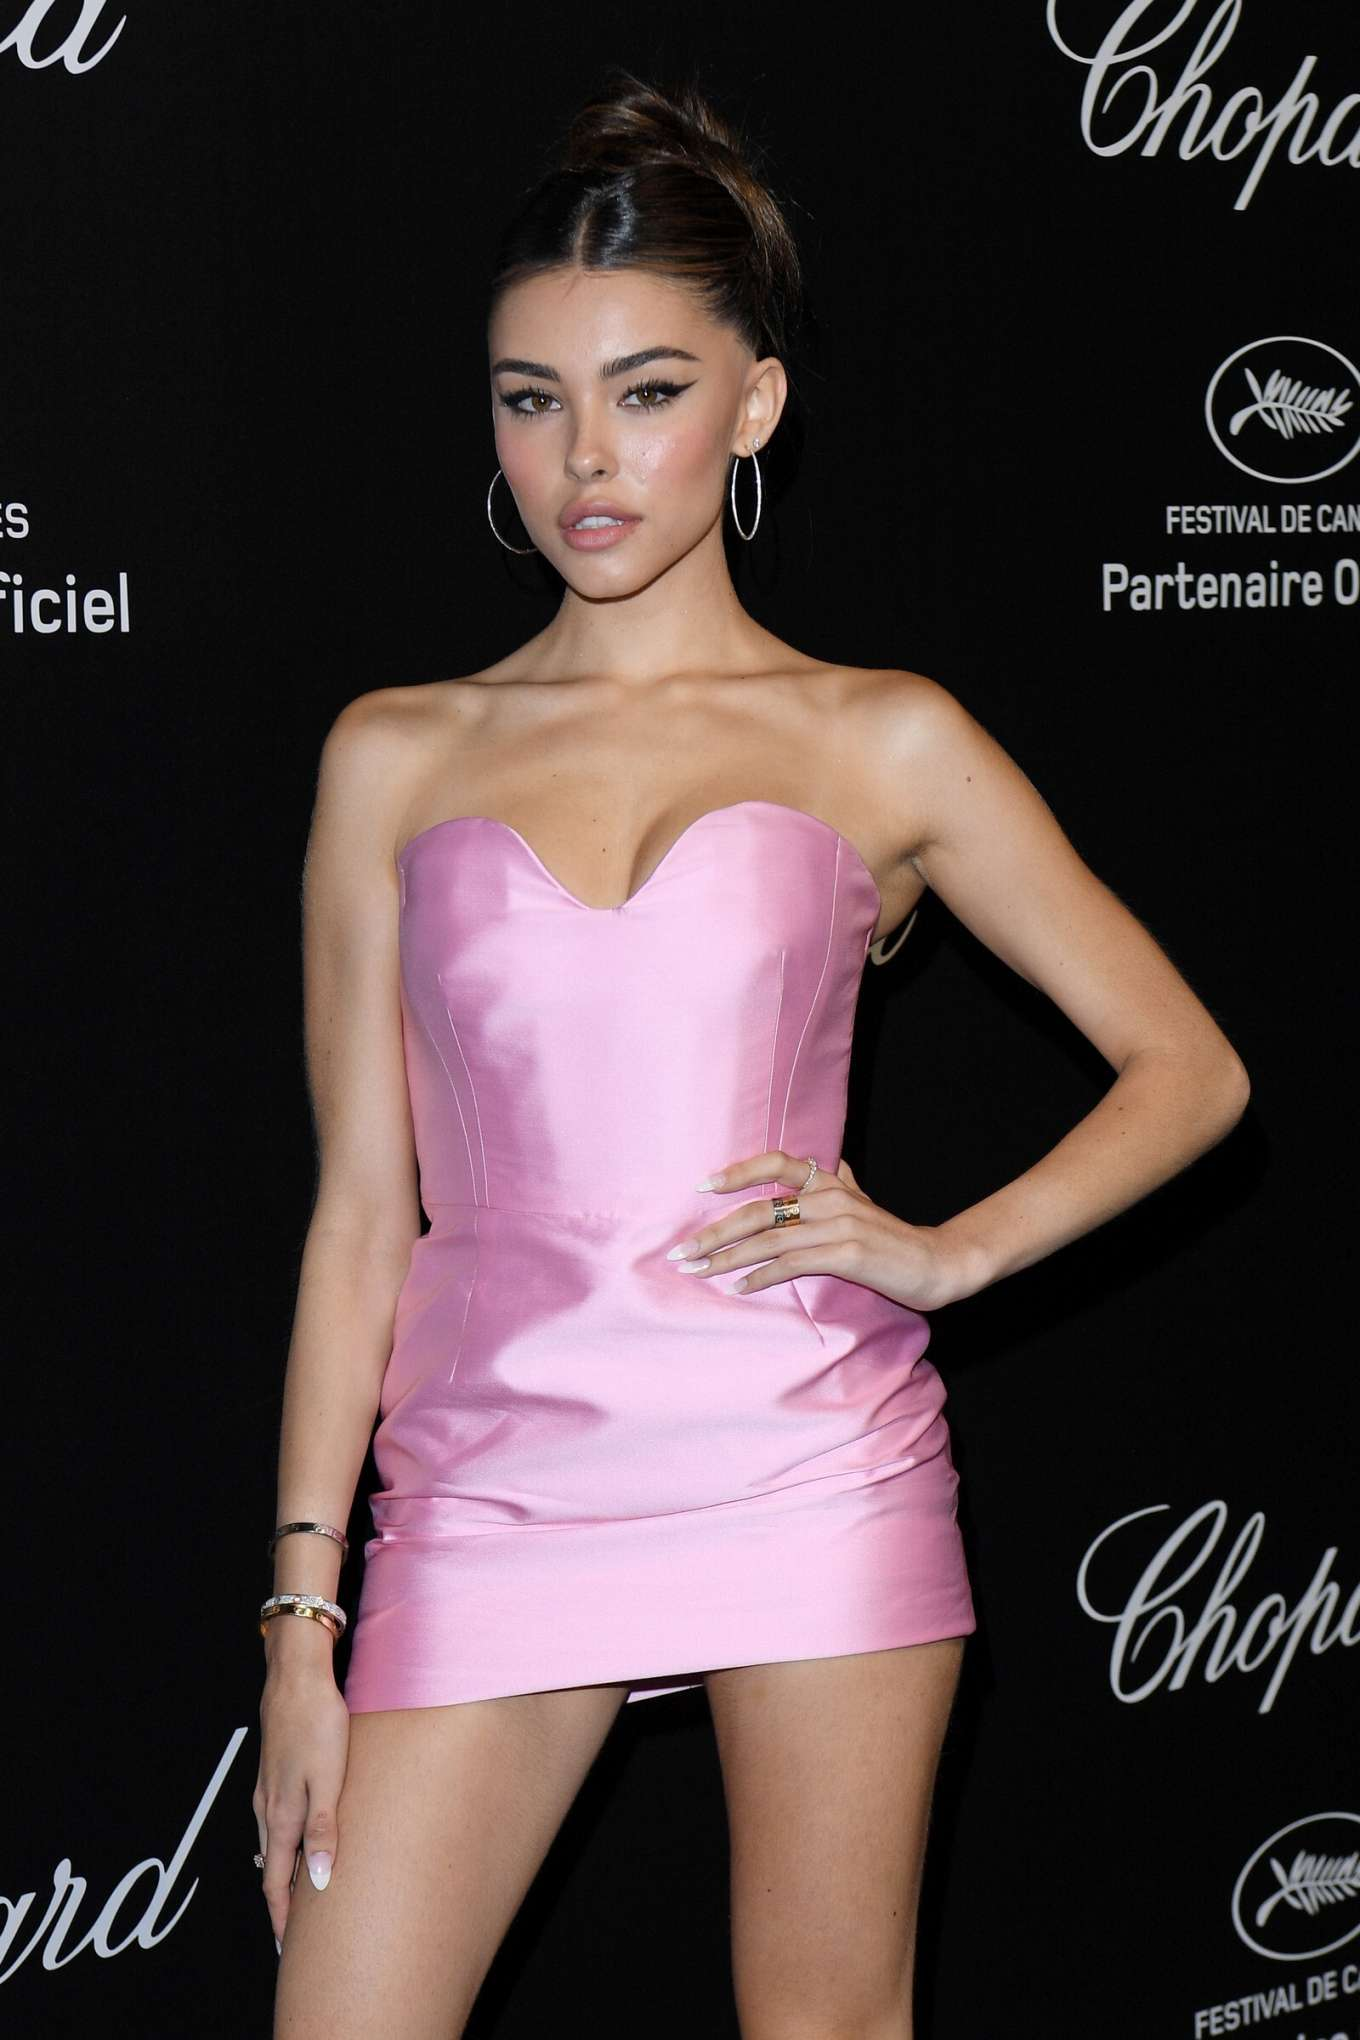 Madison Beer 2019 : Madison Beer: Chopard Party at 2019 Cannes Film Festival-03